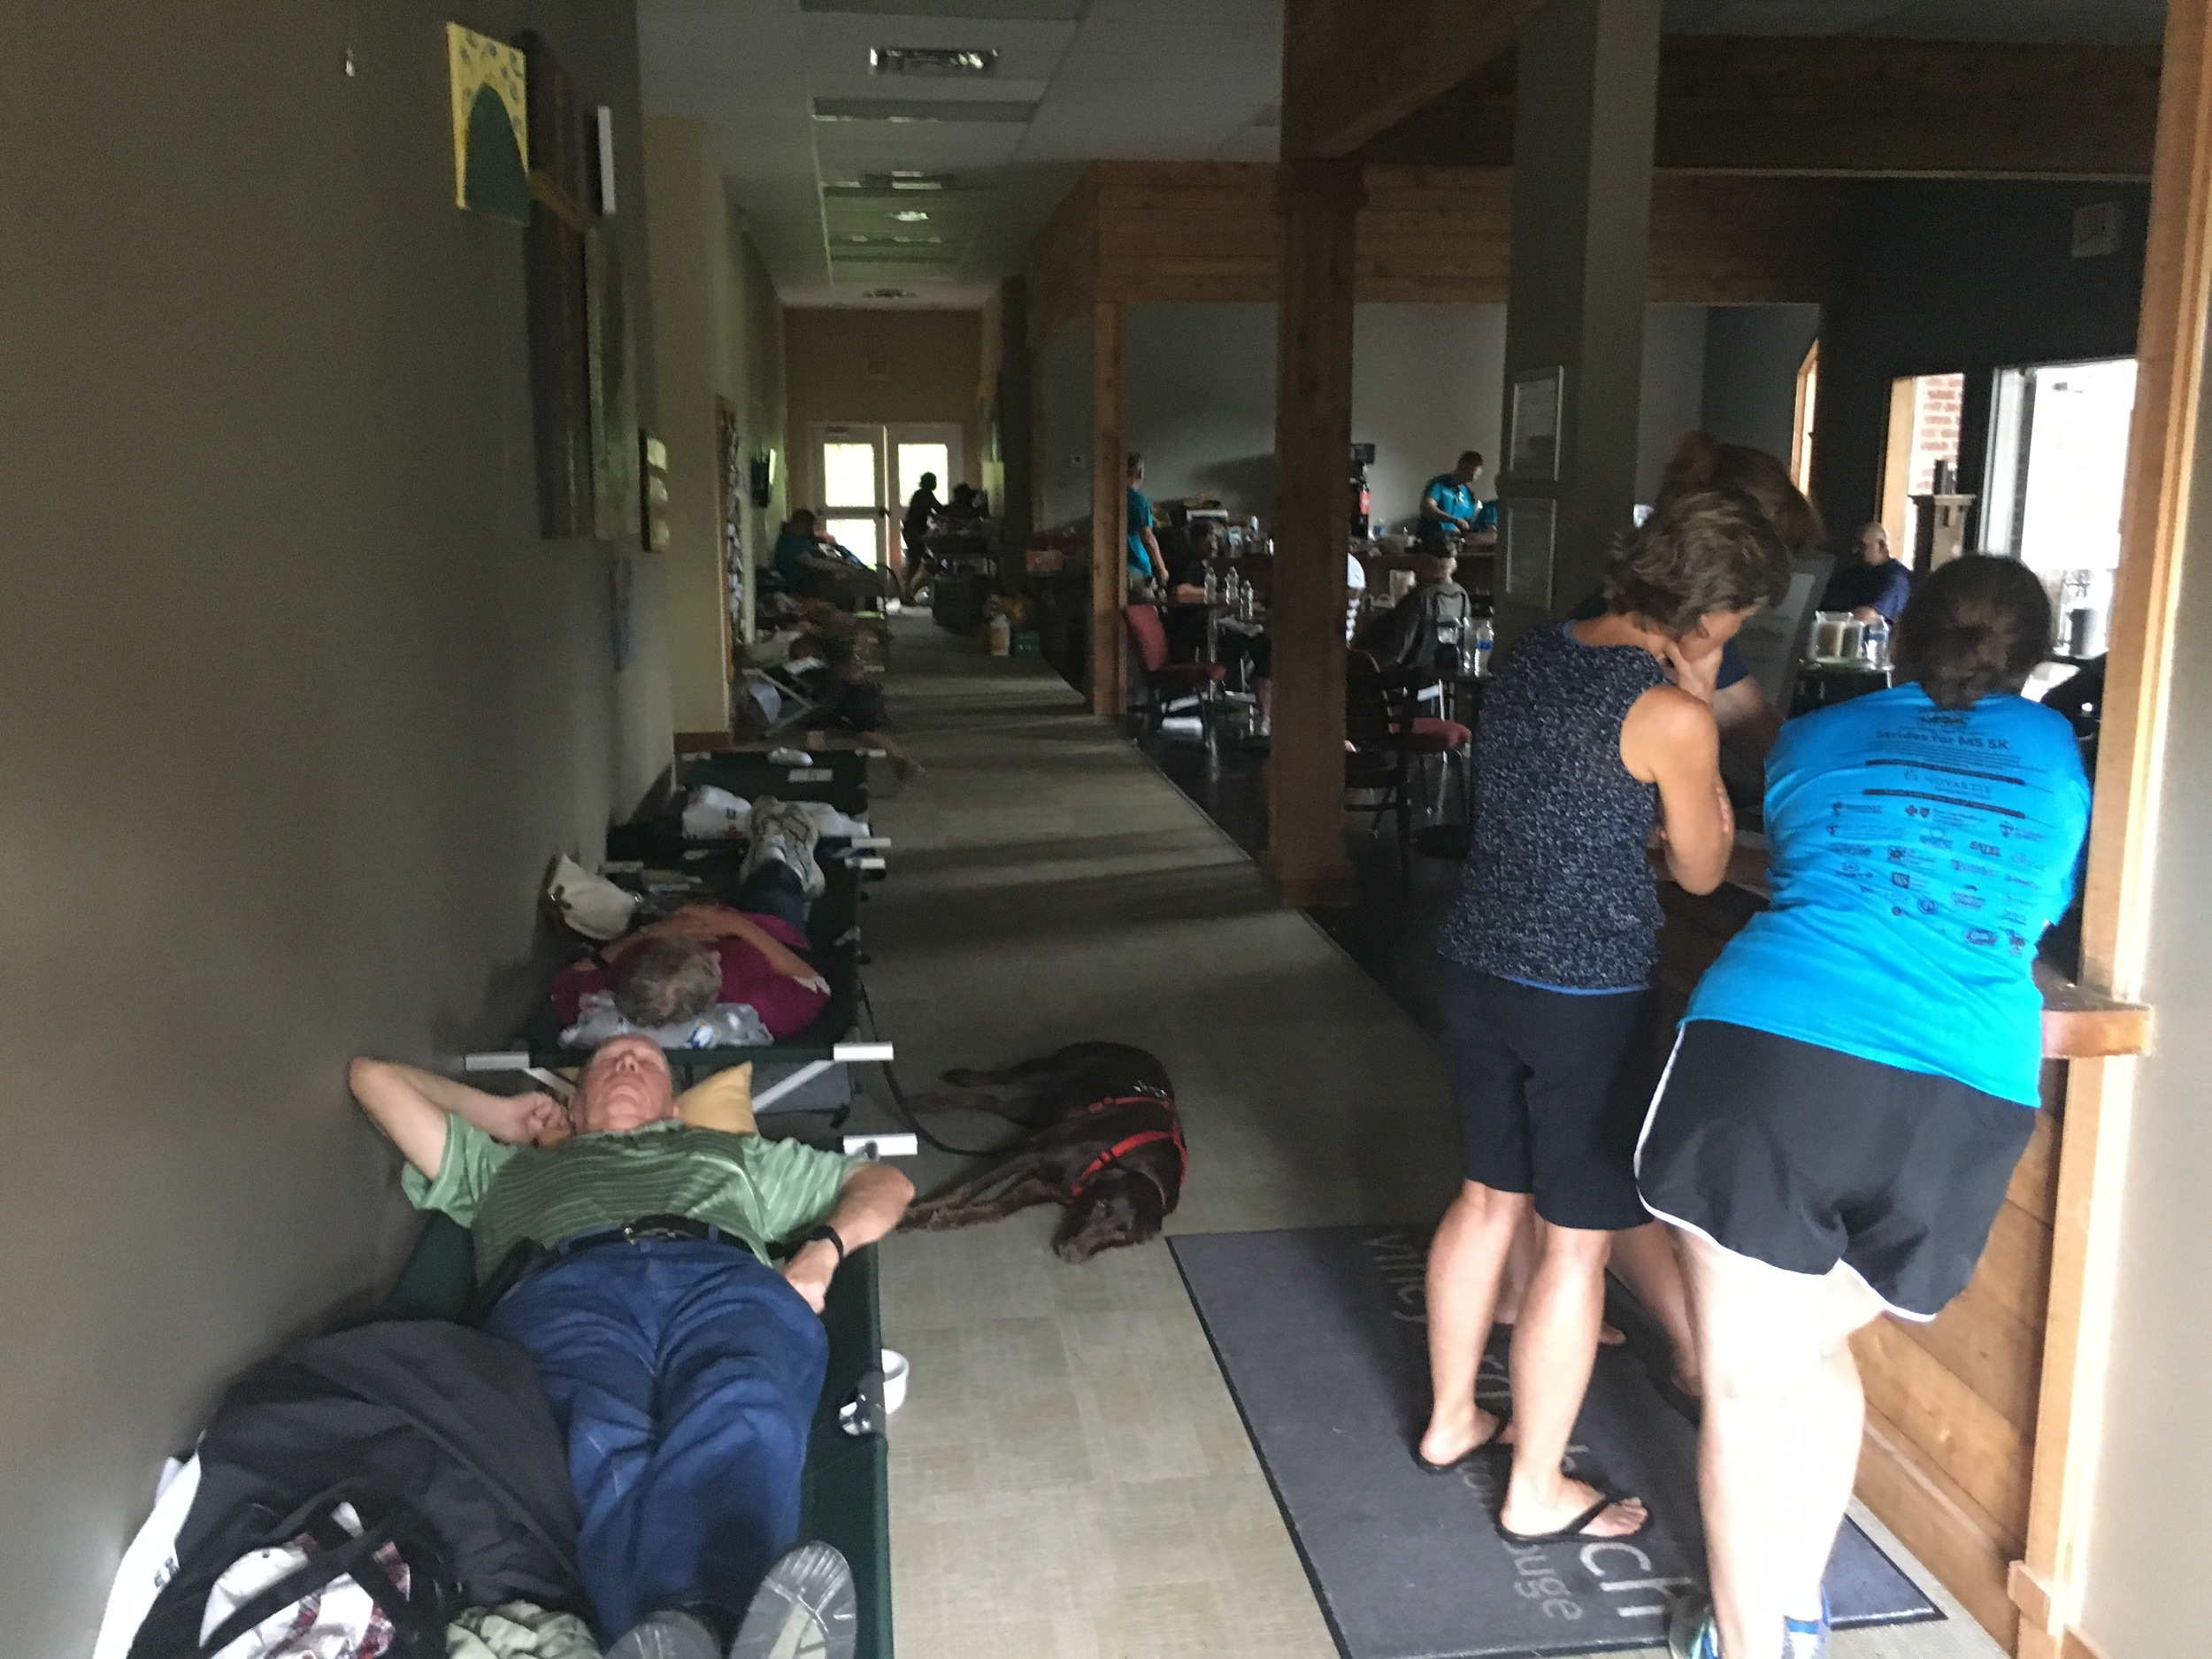 Close to 200 people were housed at our temporary shelter.